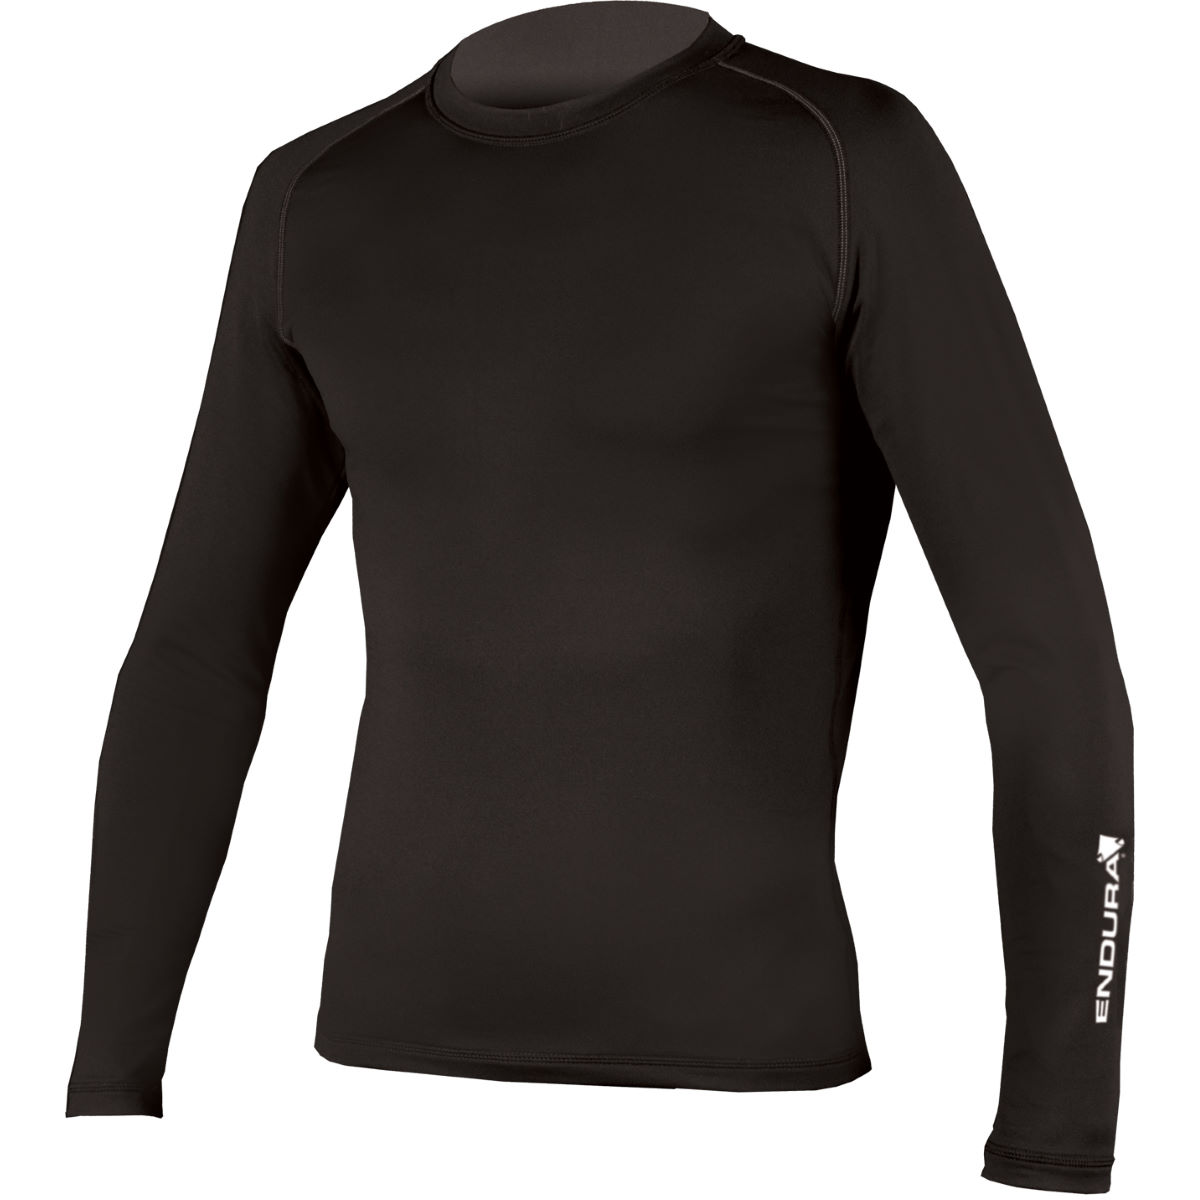 Endura frontline base layer base layers black aw16 e3025 3 0